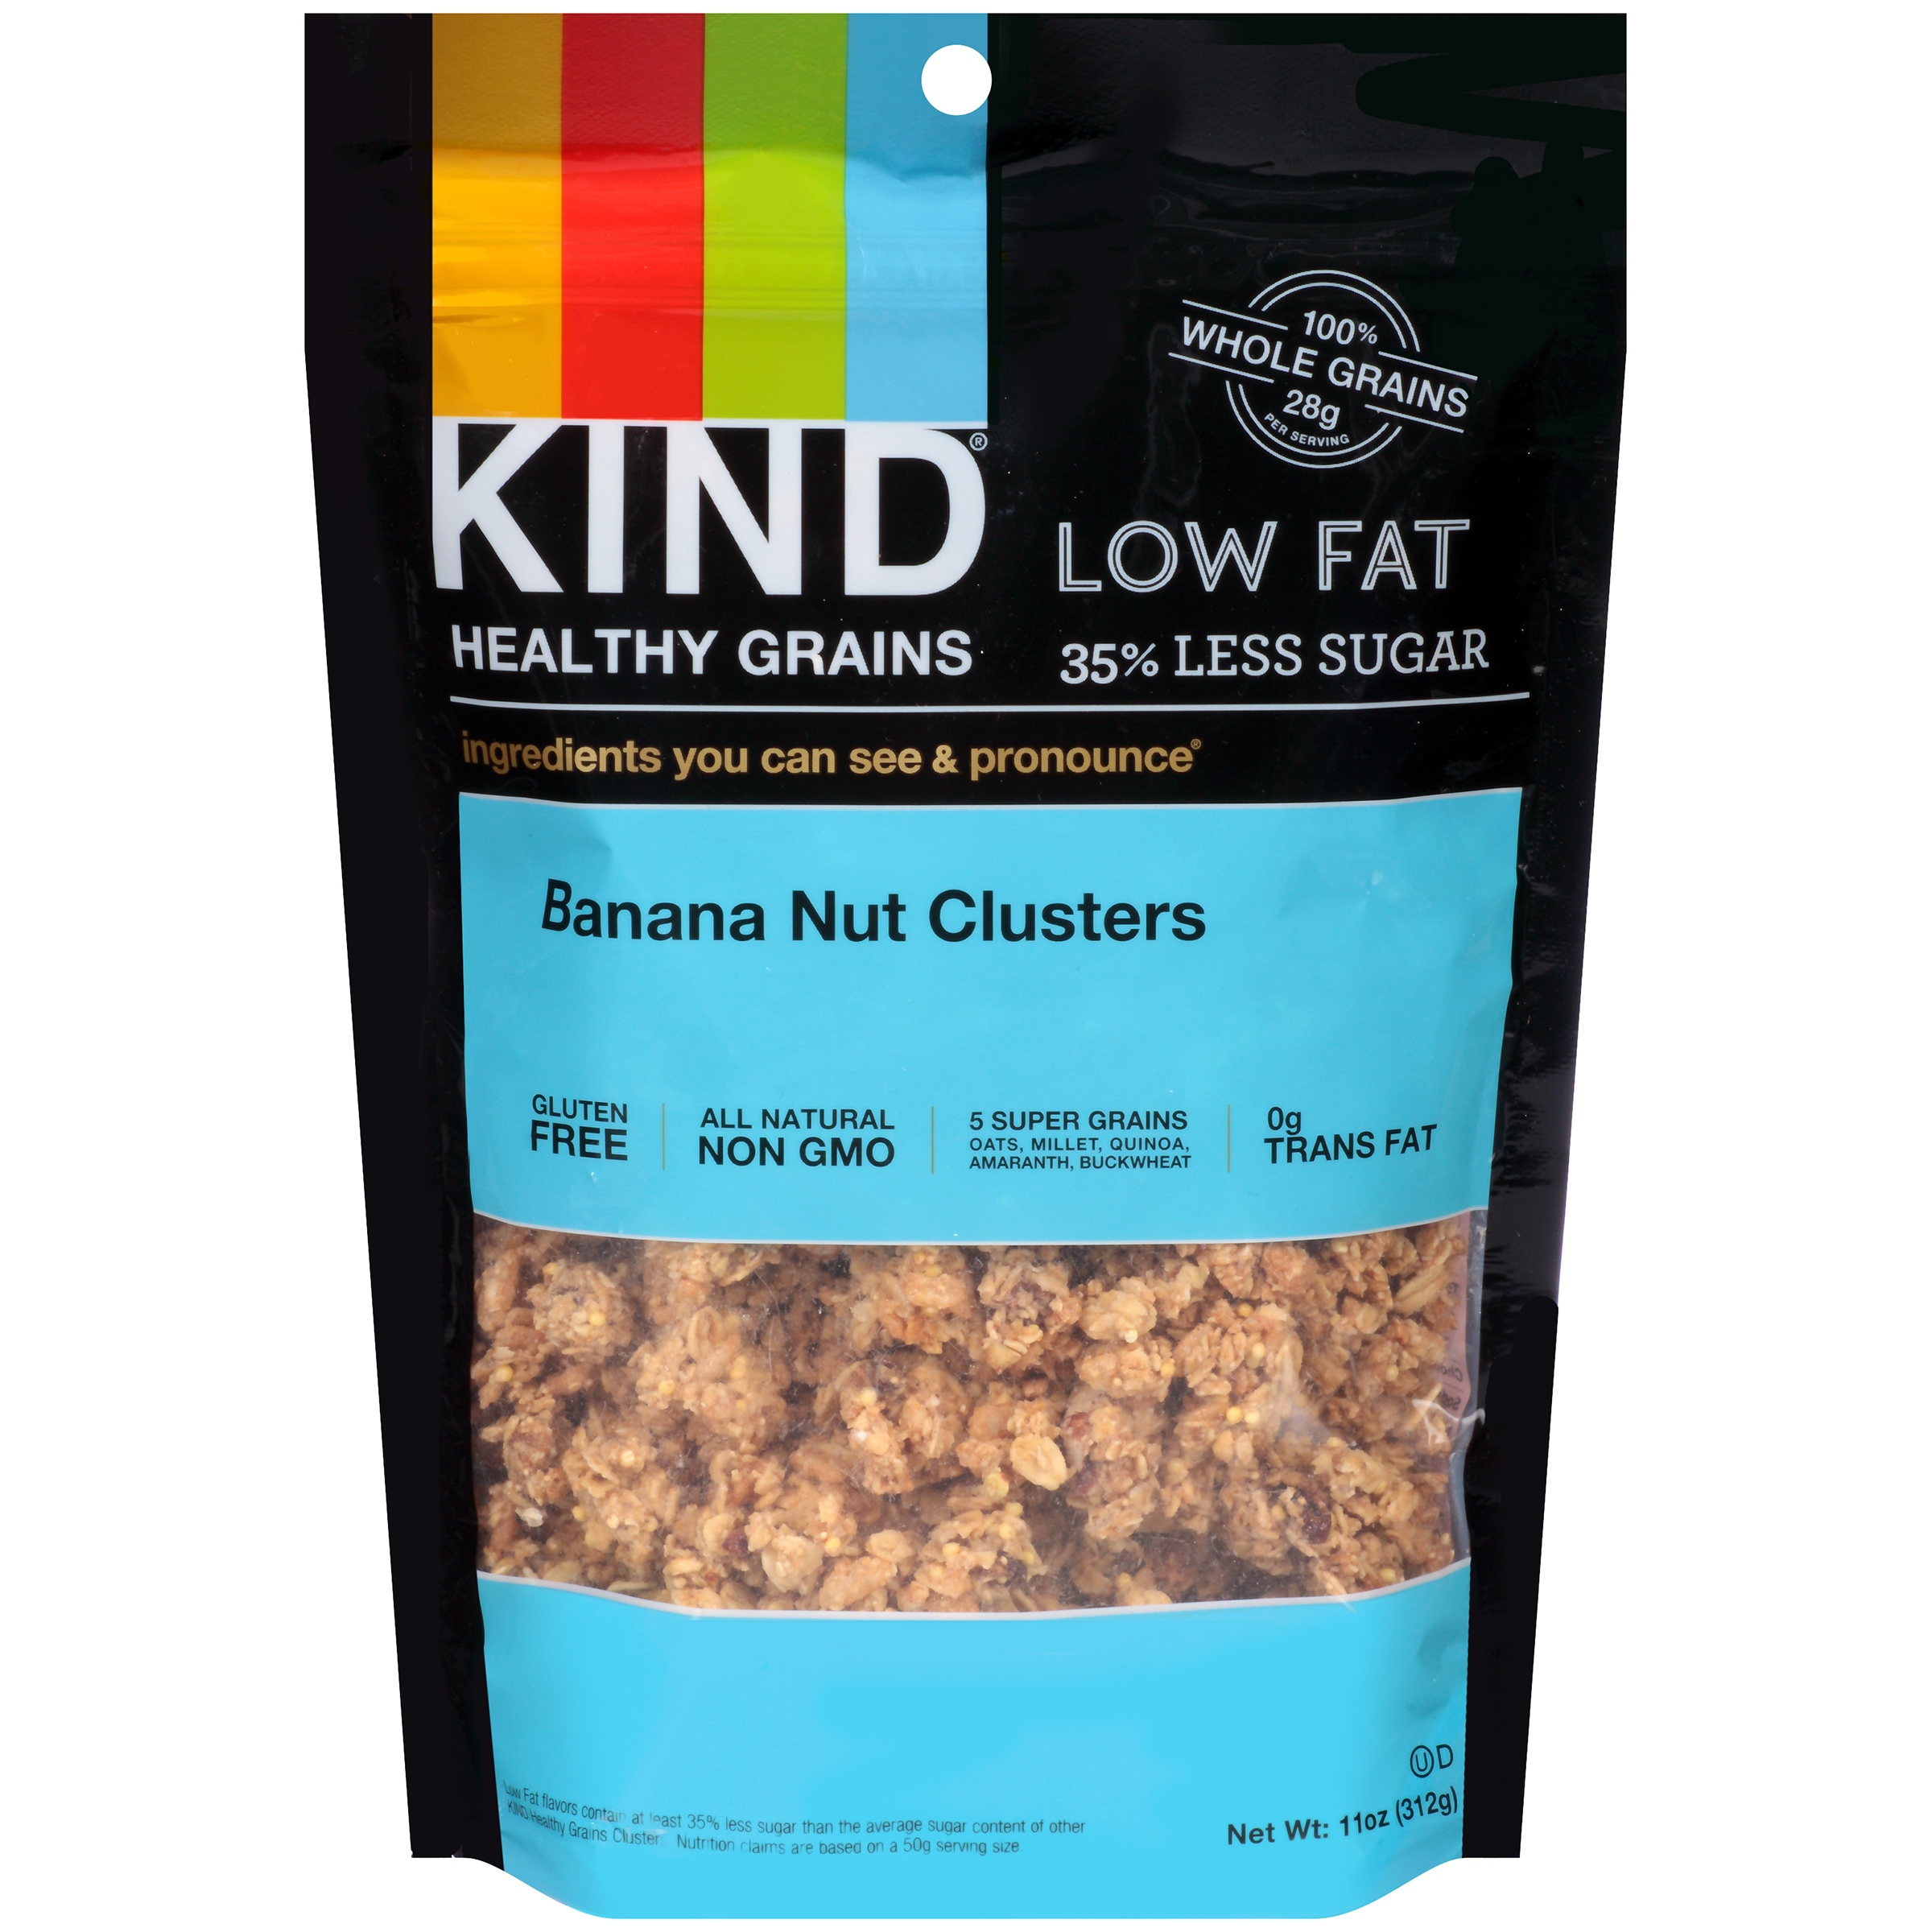 KIND Banana Nut Clusters 11 oz. Pouch by Kind